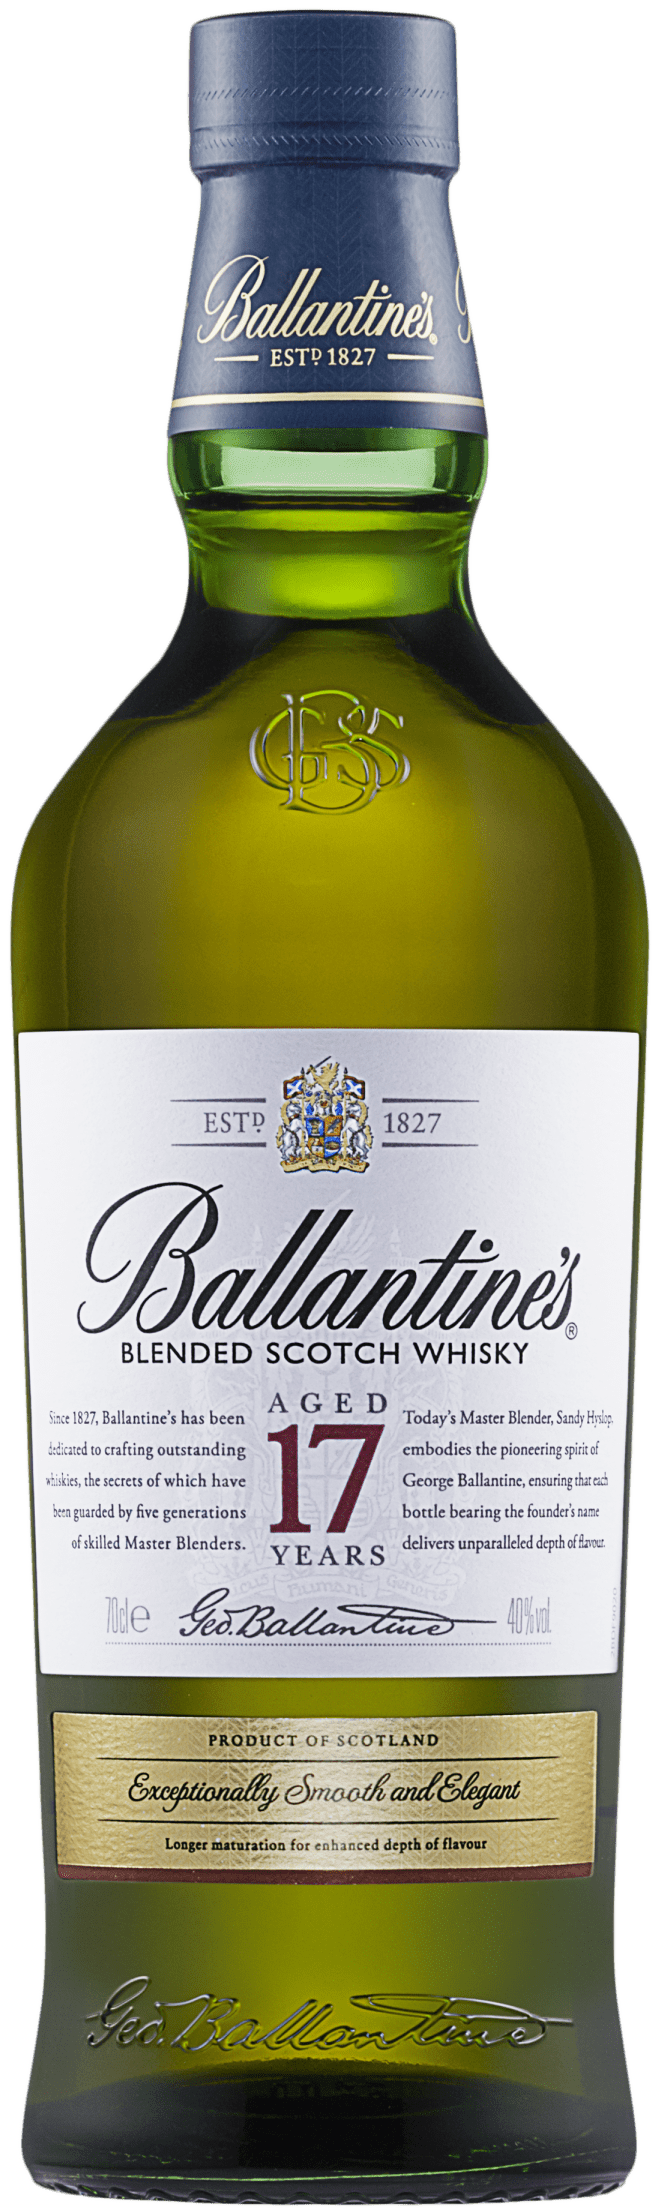 Ballantines 17 Year Old bottle